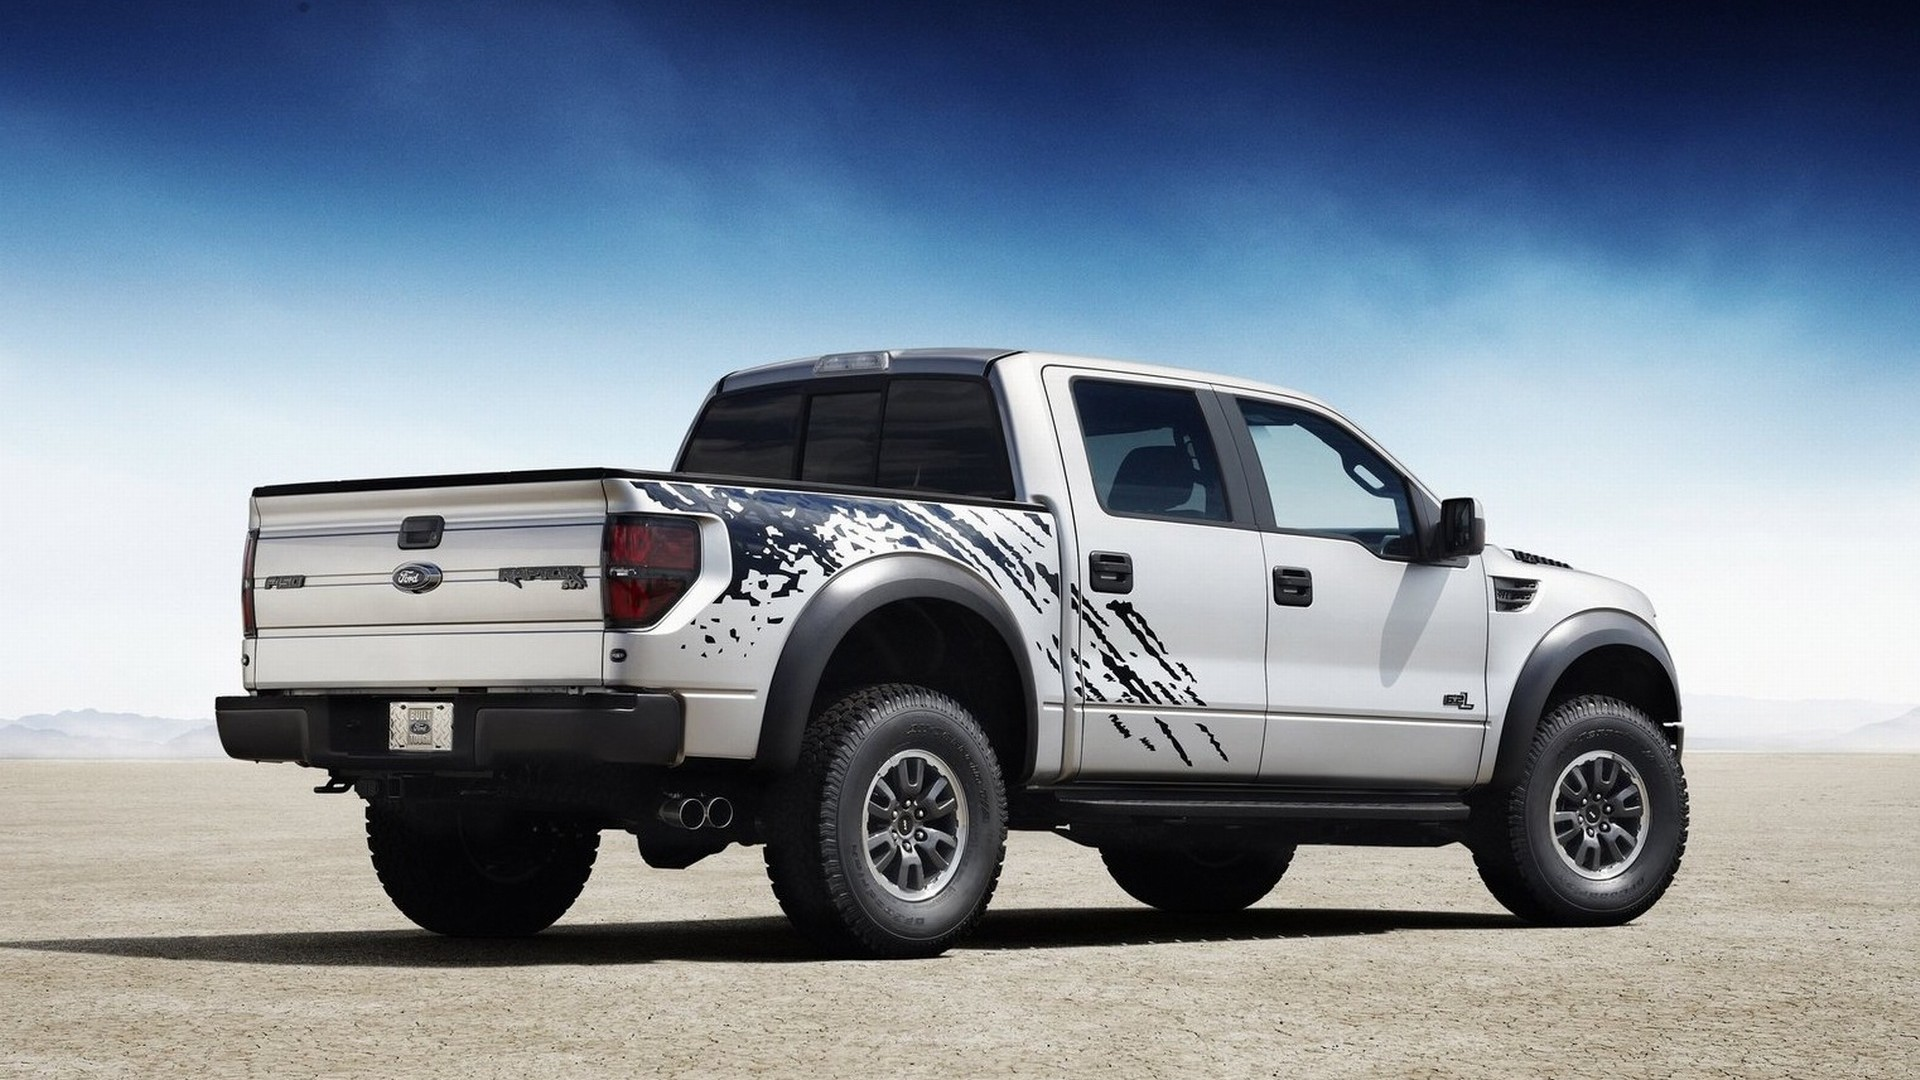 Ford f150 Wallpaper wallpaper wallpaper hd background desktop 1920x1080